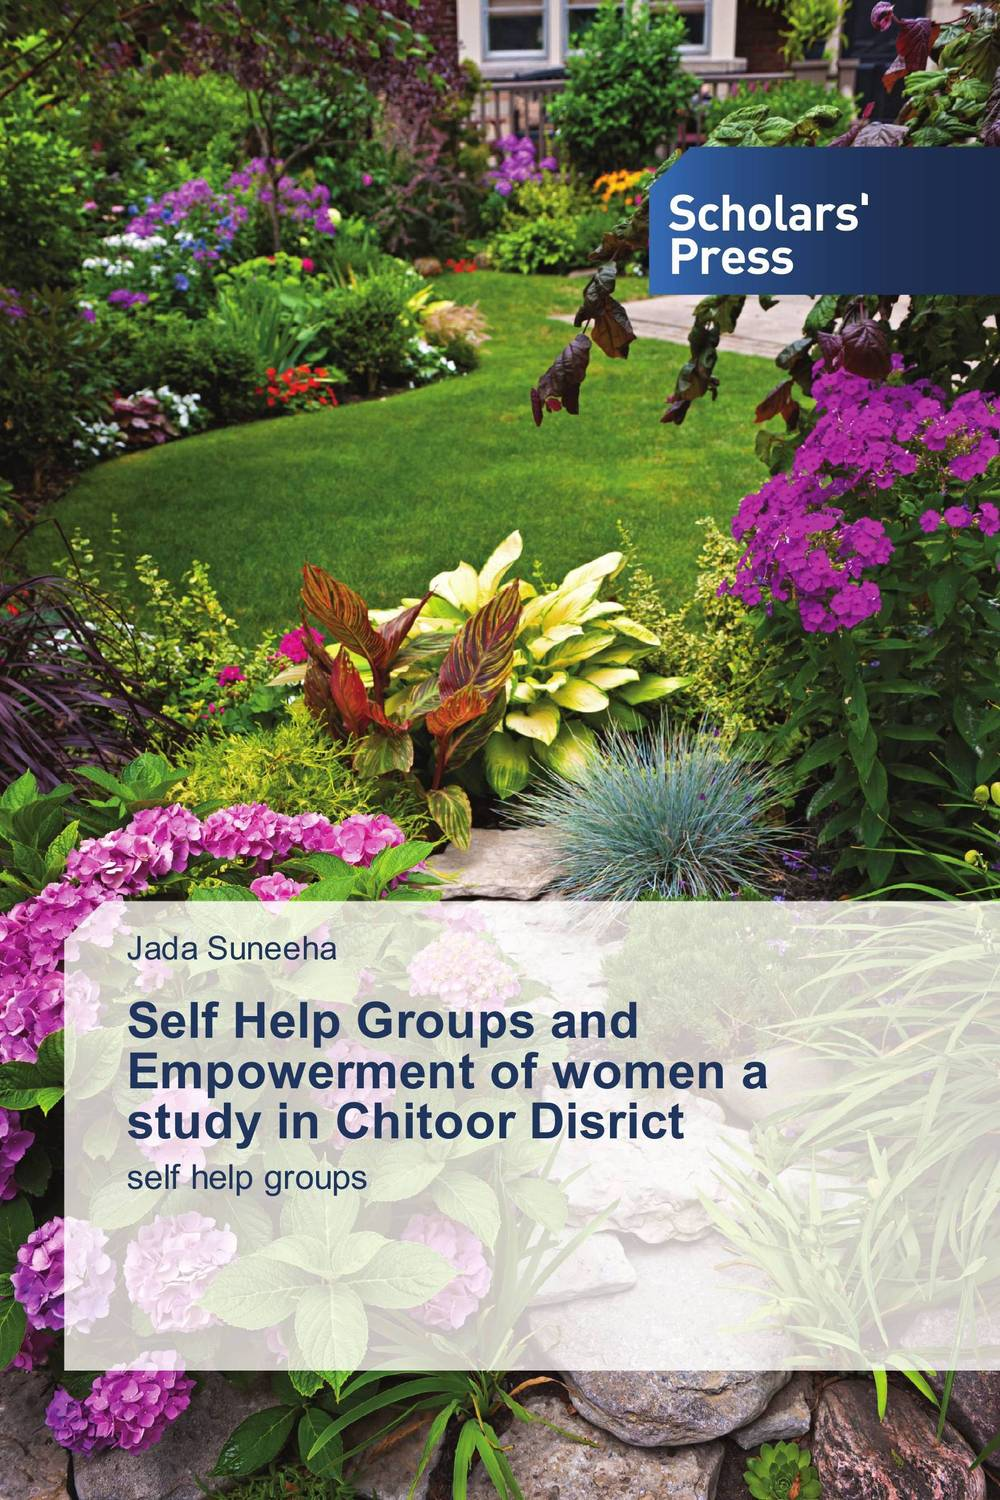 Self Help Groups and Empowerment of women a study in Chitoor Disrict empowerment of women through self help groups